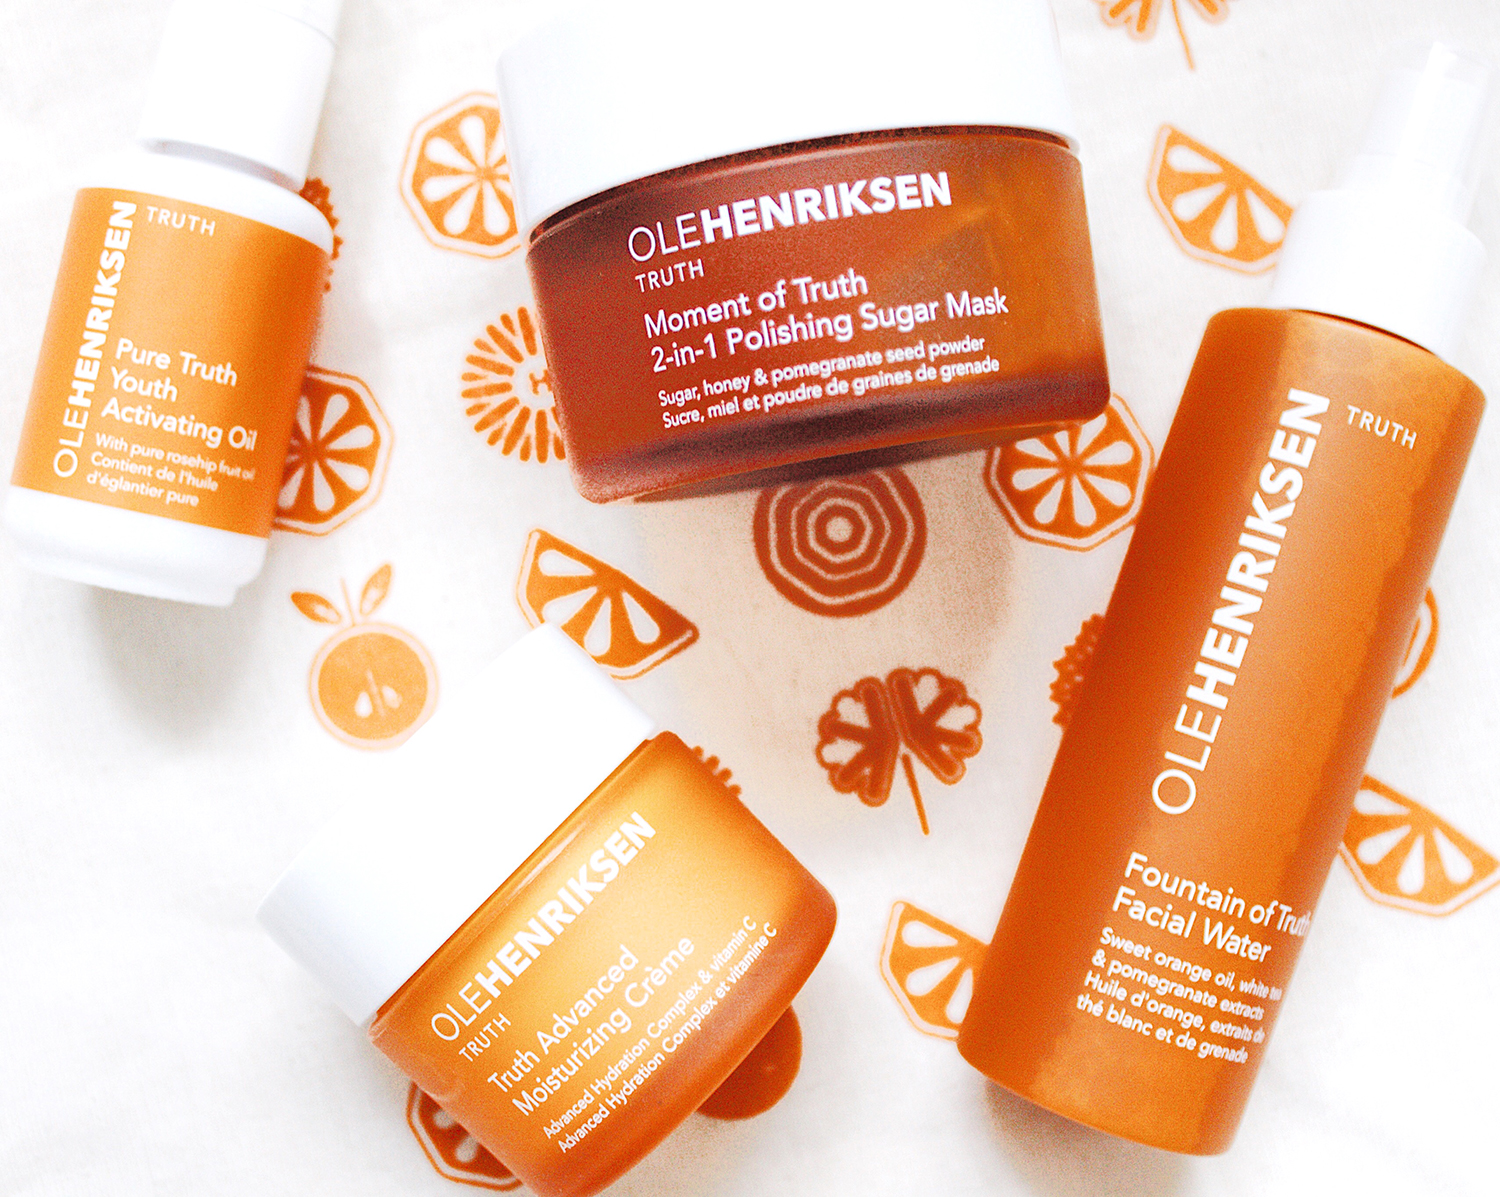 ole henriksen truth collection products